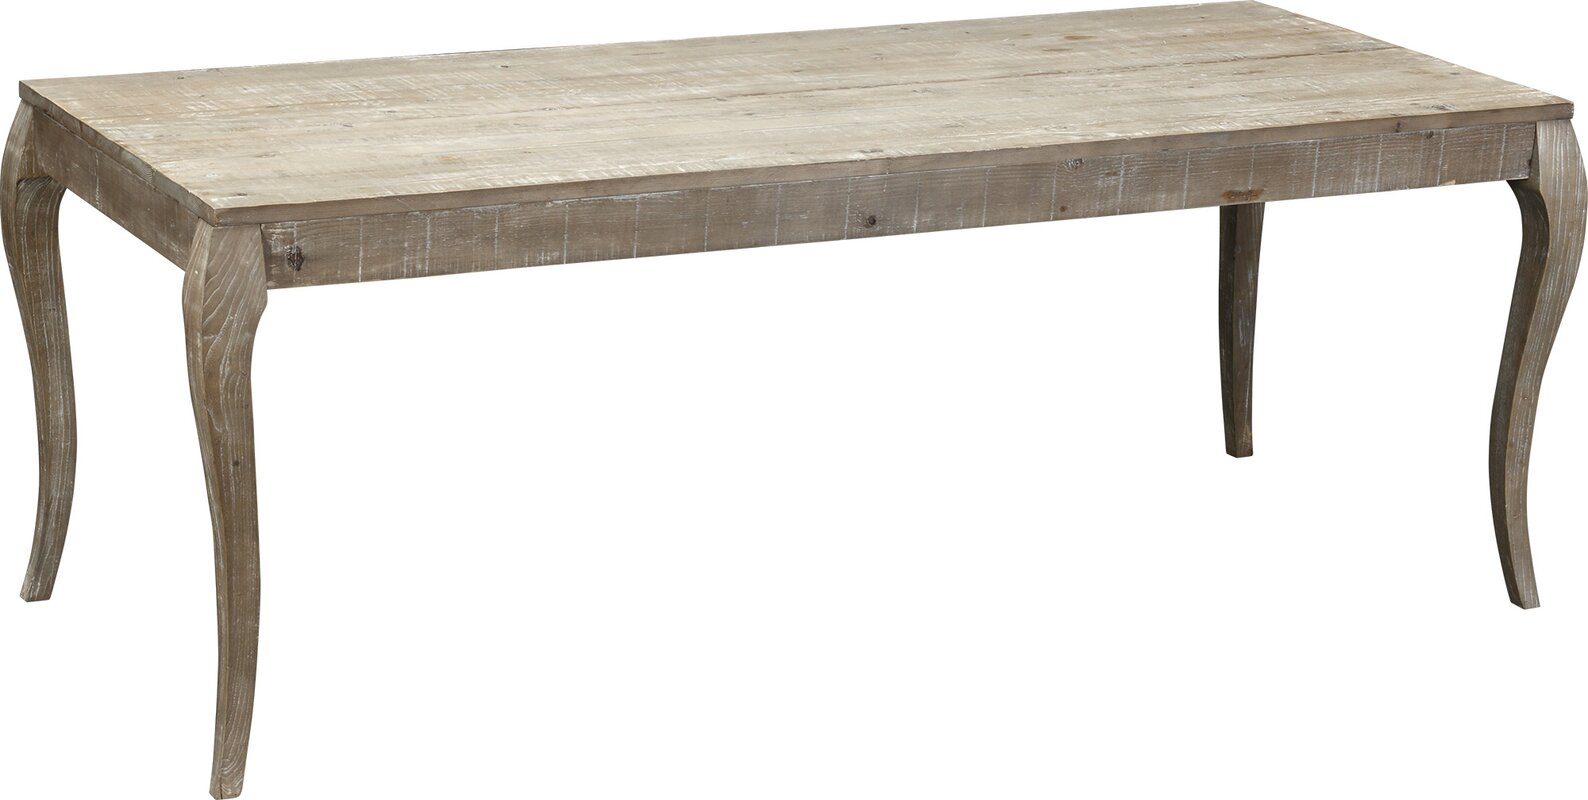 Valerie Reclaimed Pine Wood Dining Table